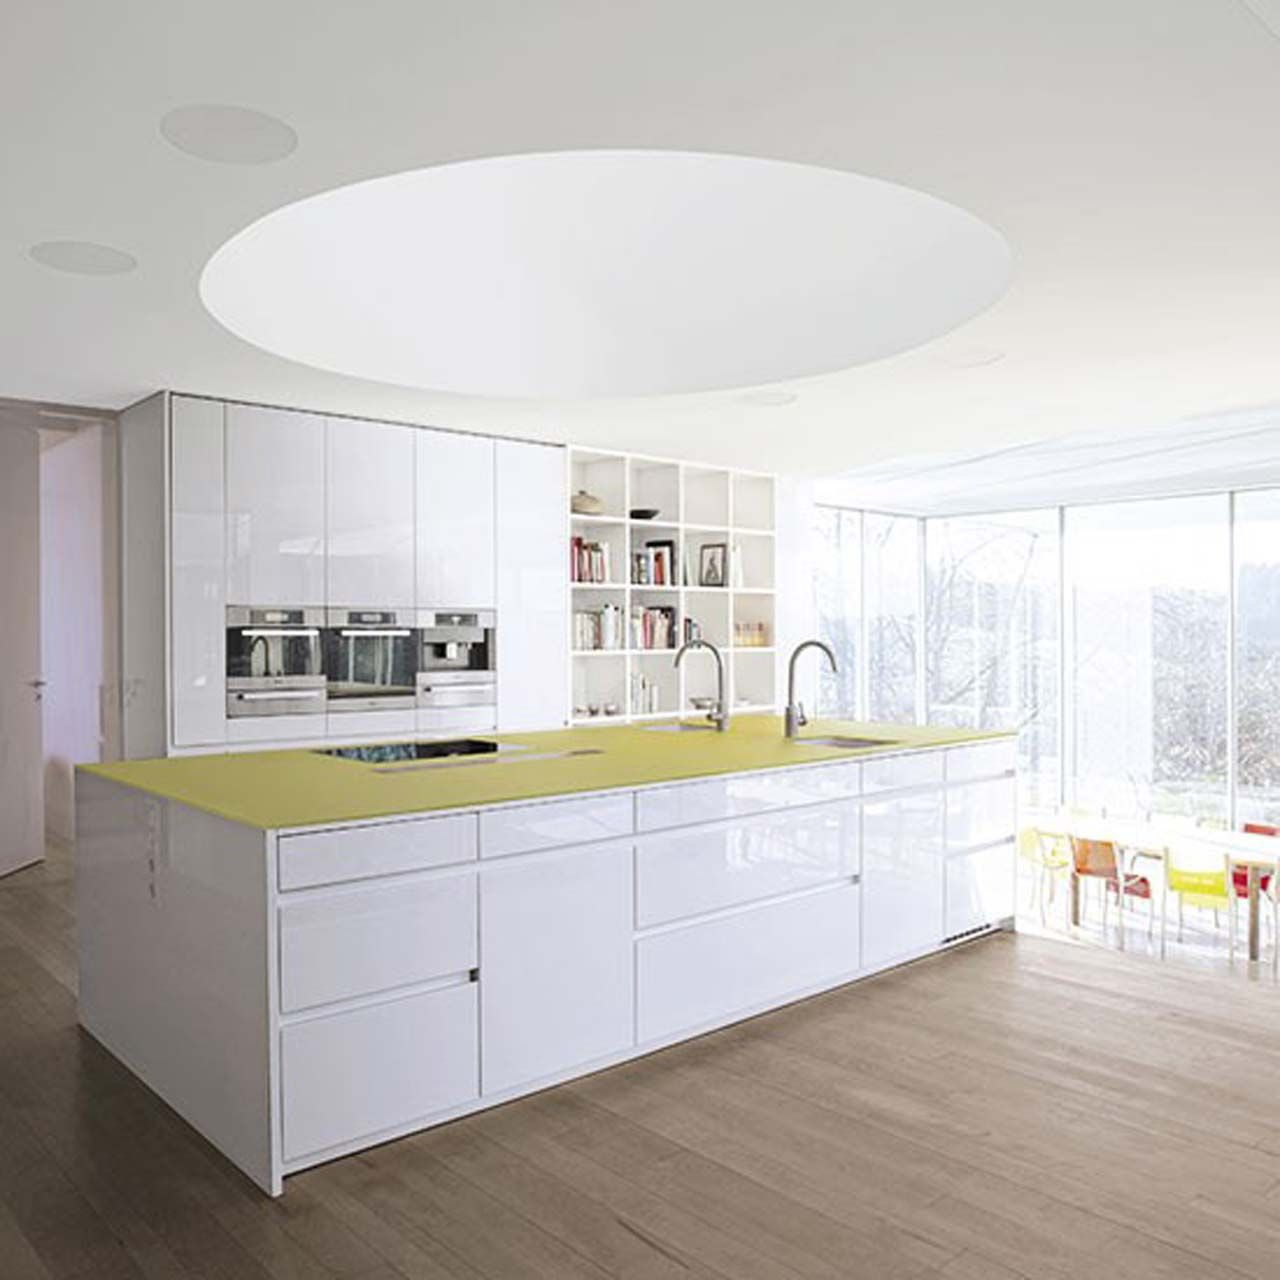 Leight White Kitchen Design Ideas ~ Httpwwwlookmyhomes Awesome Www.kitchen Designs Design Decoration